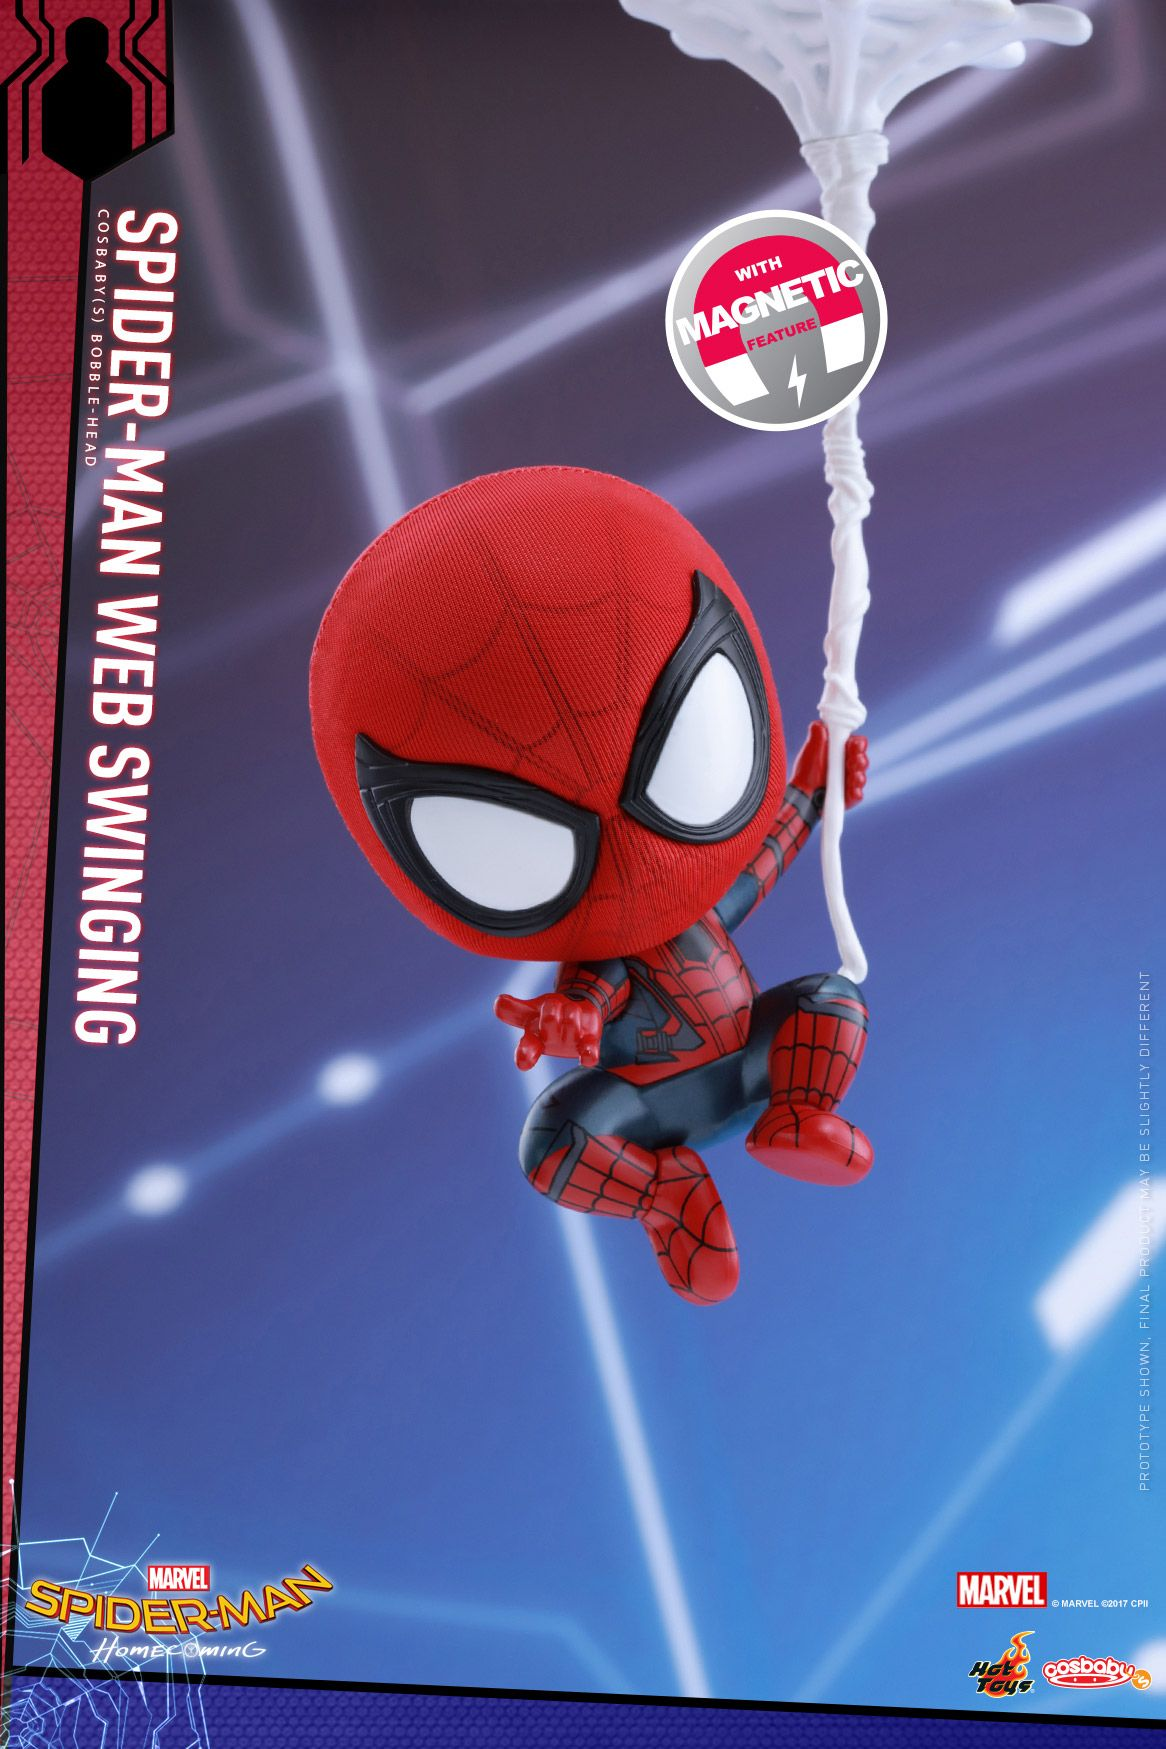 Hot Toys Has Revealed Their Spider Man Homecoming Cosbaby Figures, Including